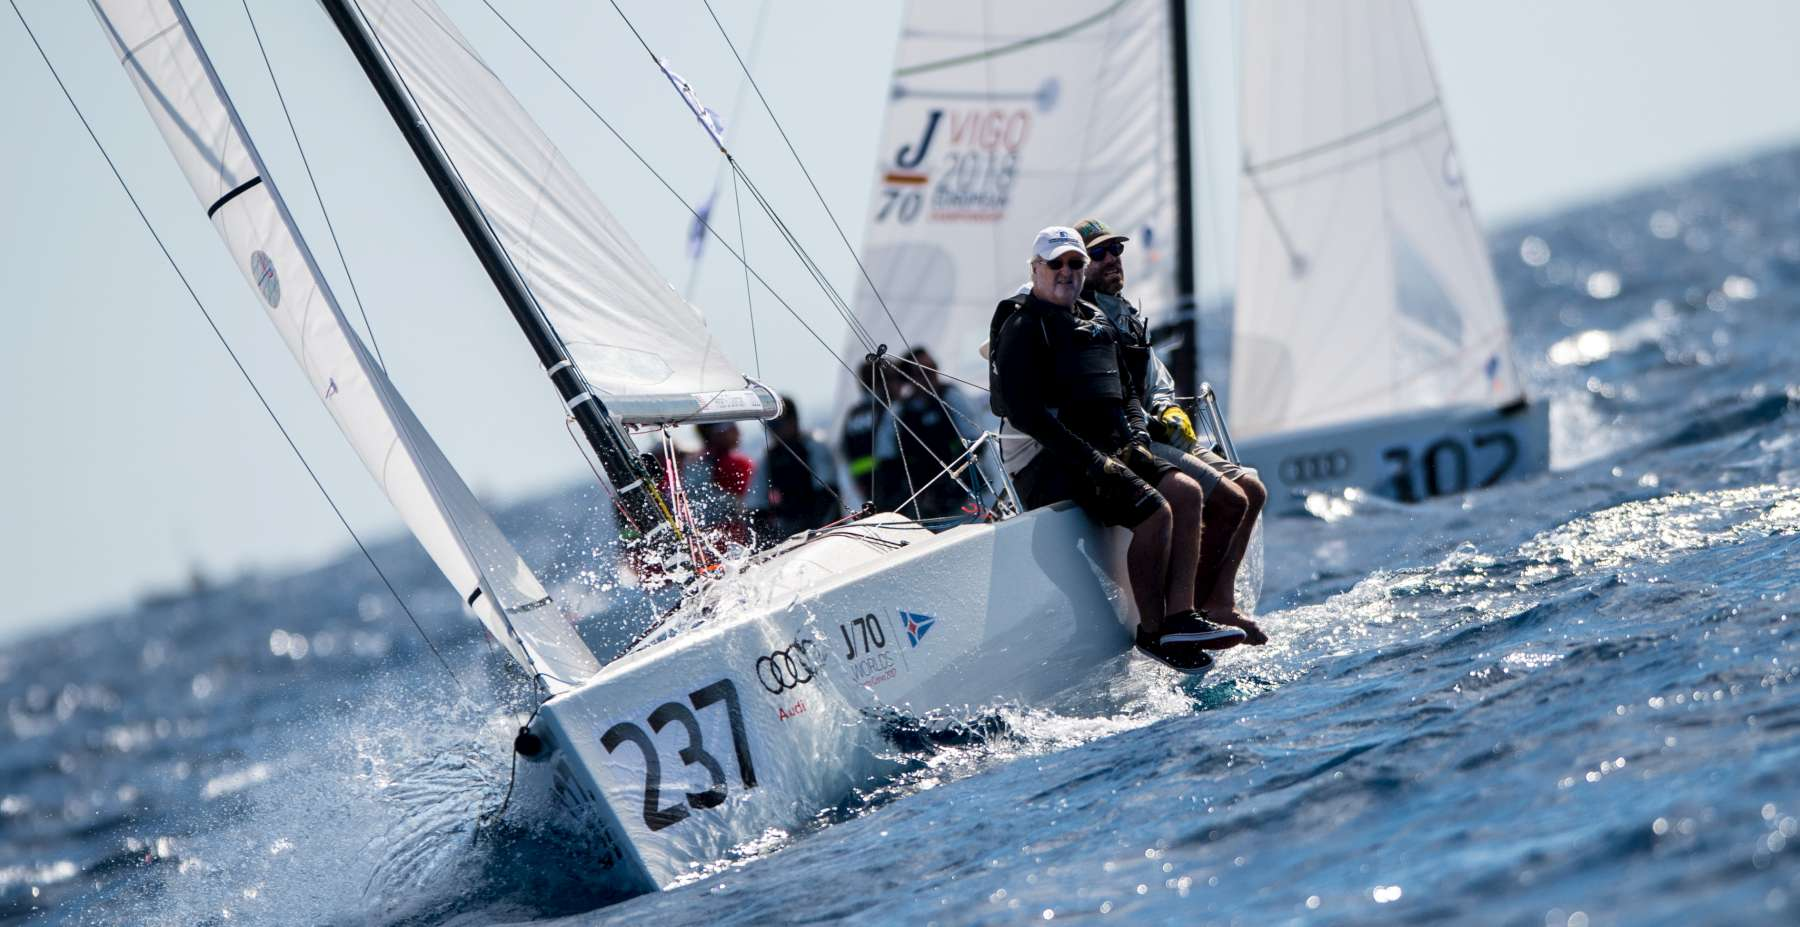 Audi J/70 World Championship: Relative Obscurity Rises to the Top - NEWS - Yacht Club Costa Smeralda